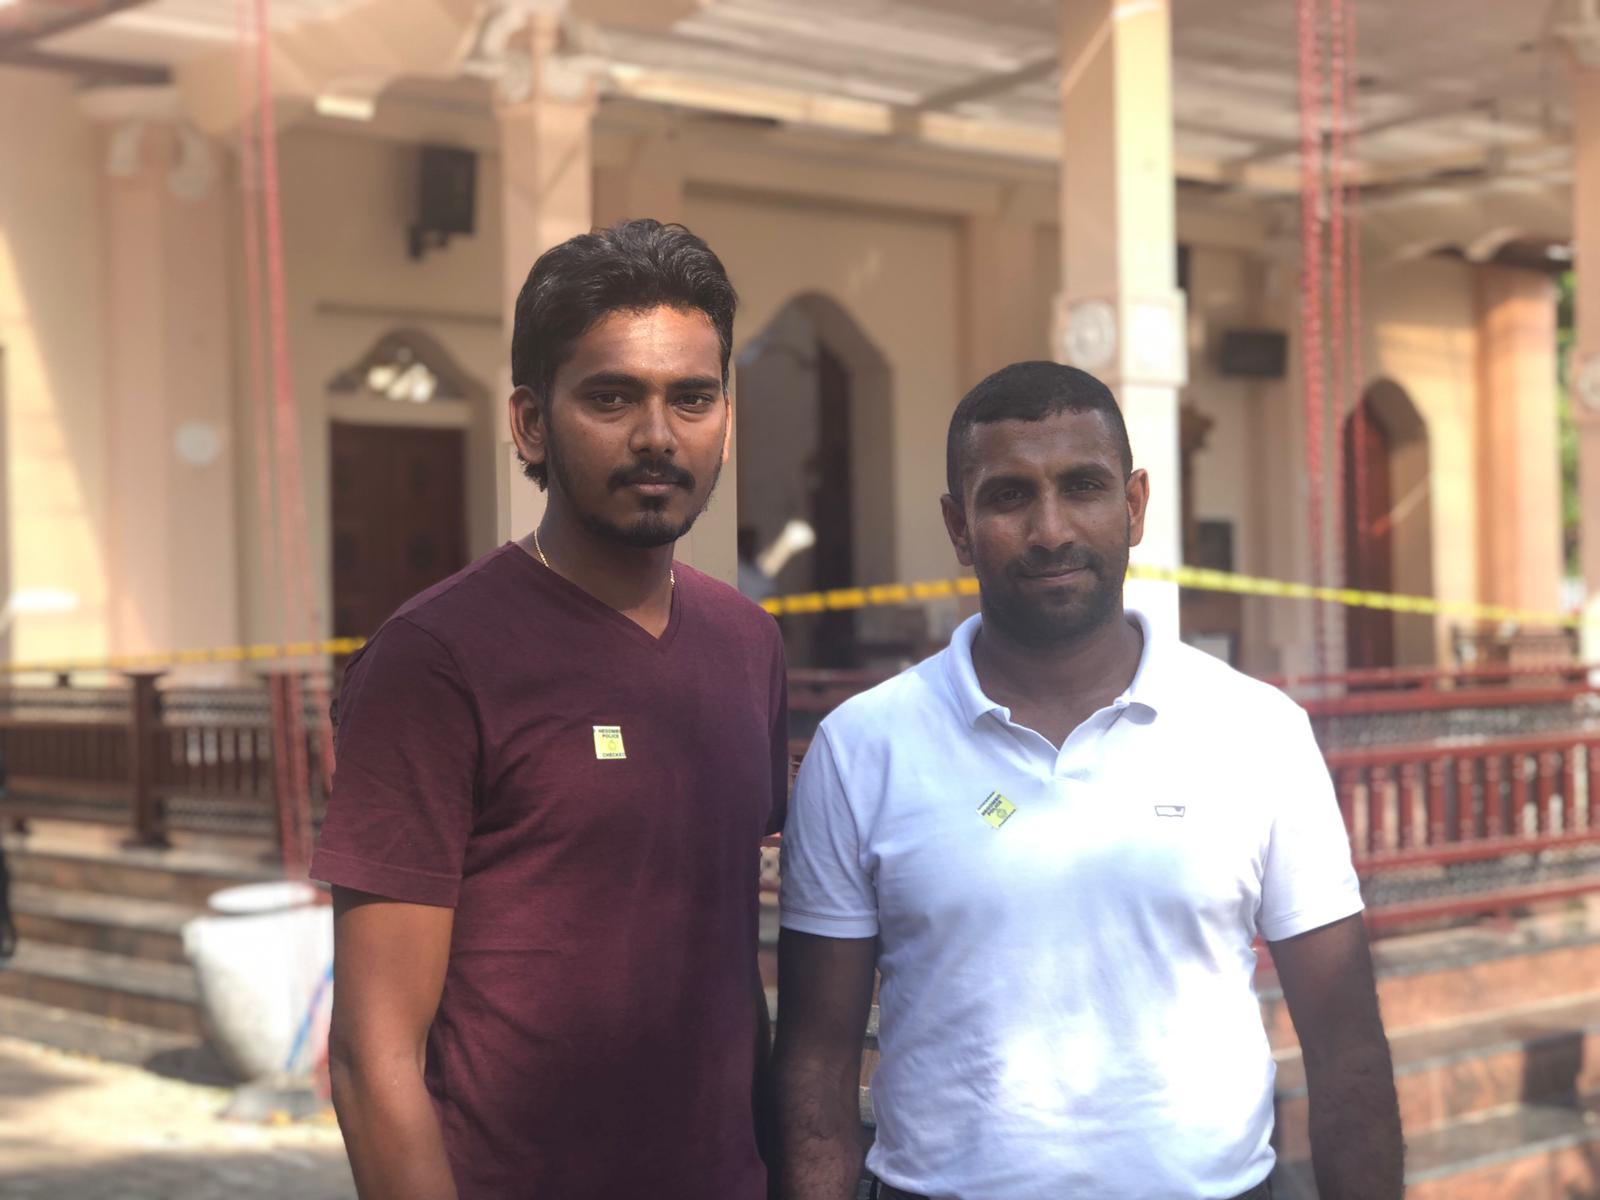 Cricketers Dushmantha Chameera, left, and Dhammika Prasad, right.